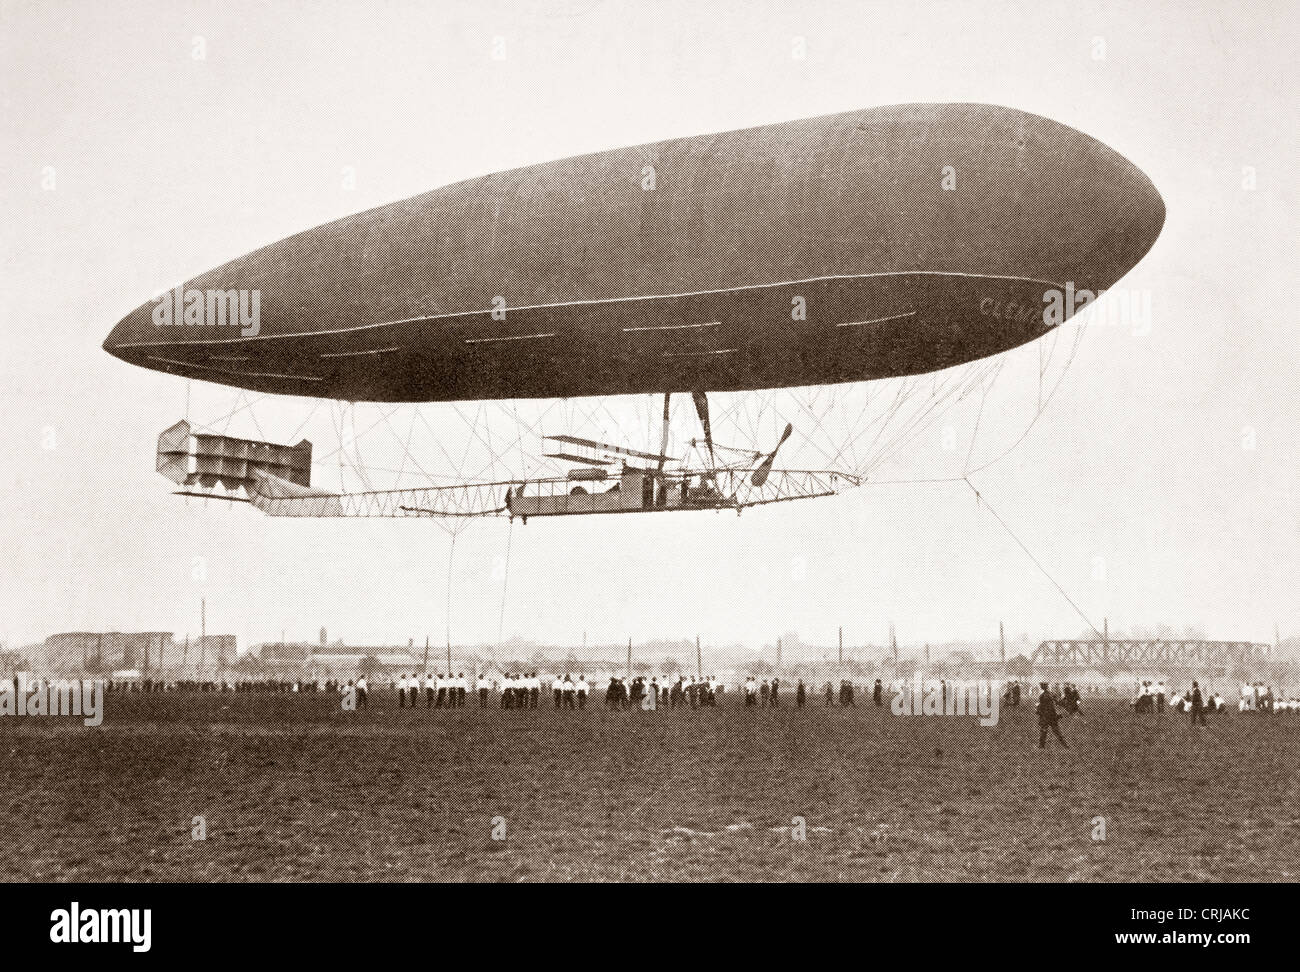 Arrival of Clement-Bayard II dirigible airship at Wormwood Scrubs, England after flight from Breuil, France October - Stock Image